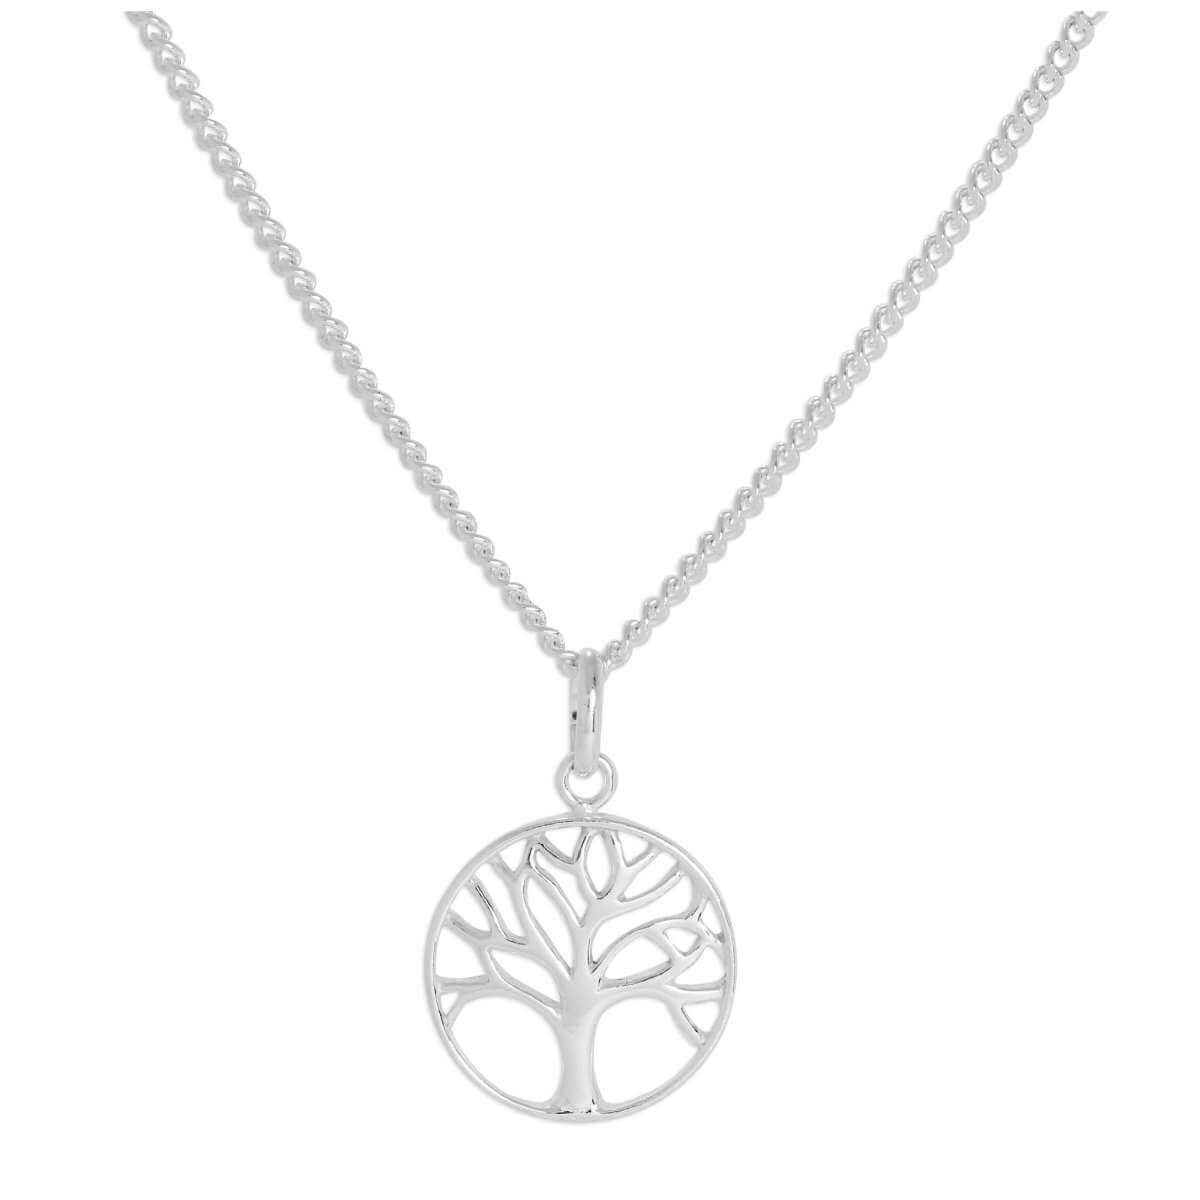 Sterling Silver Tree of Life Necklace 16 - 24 Inches